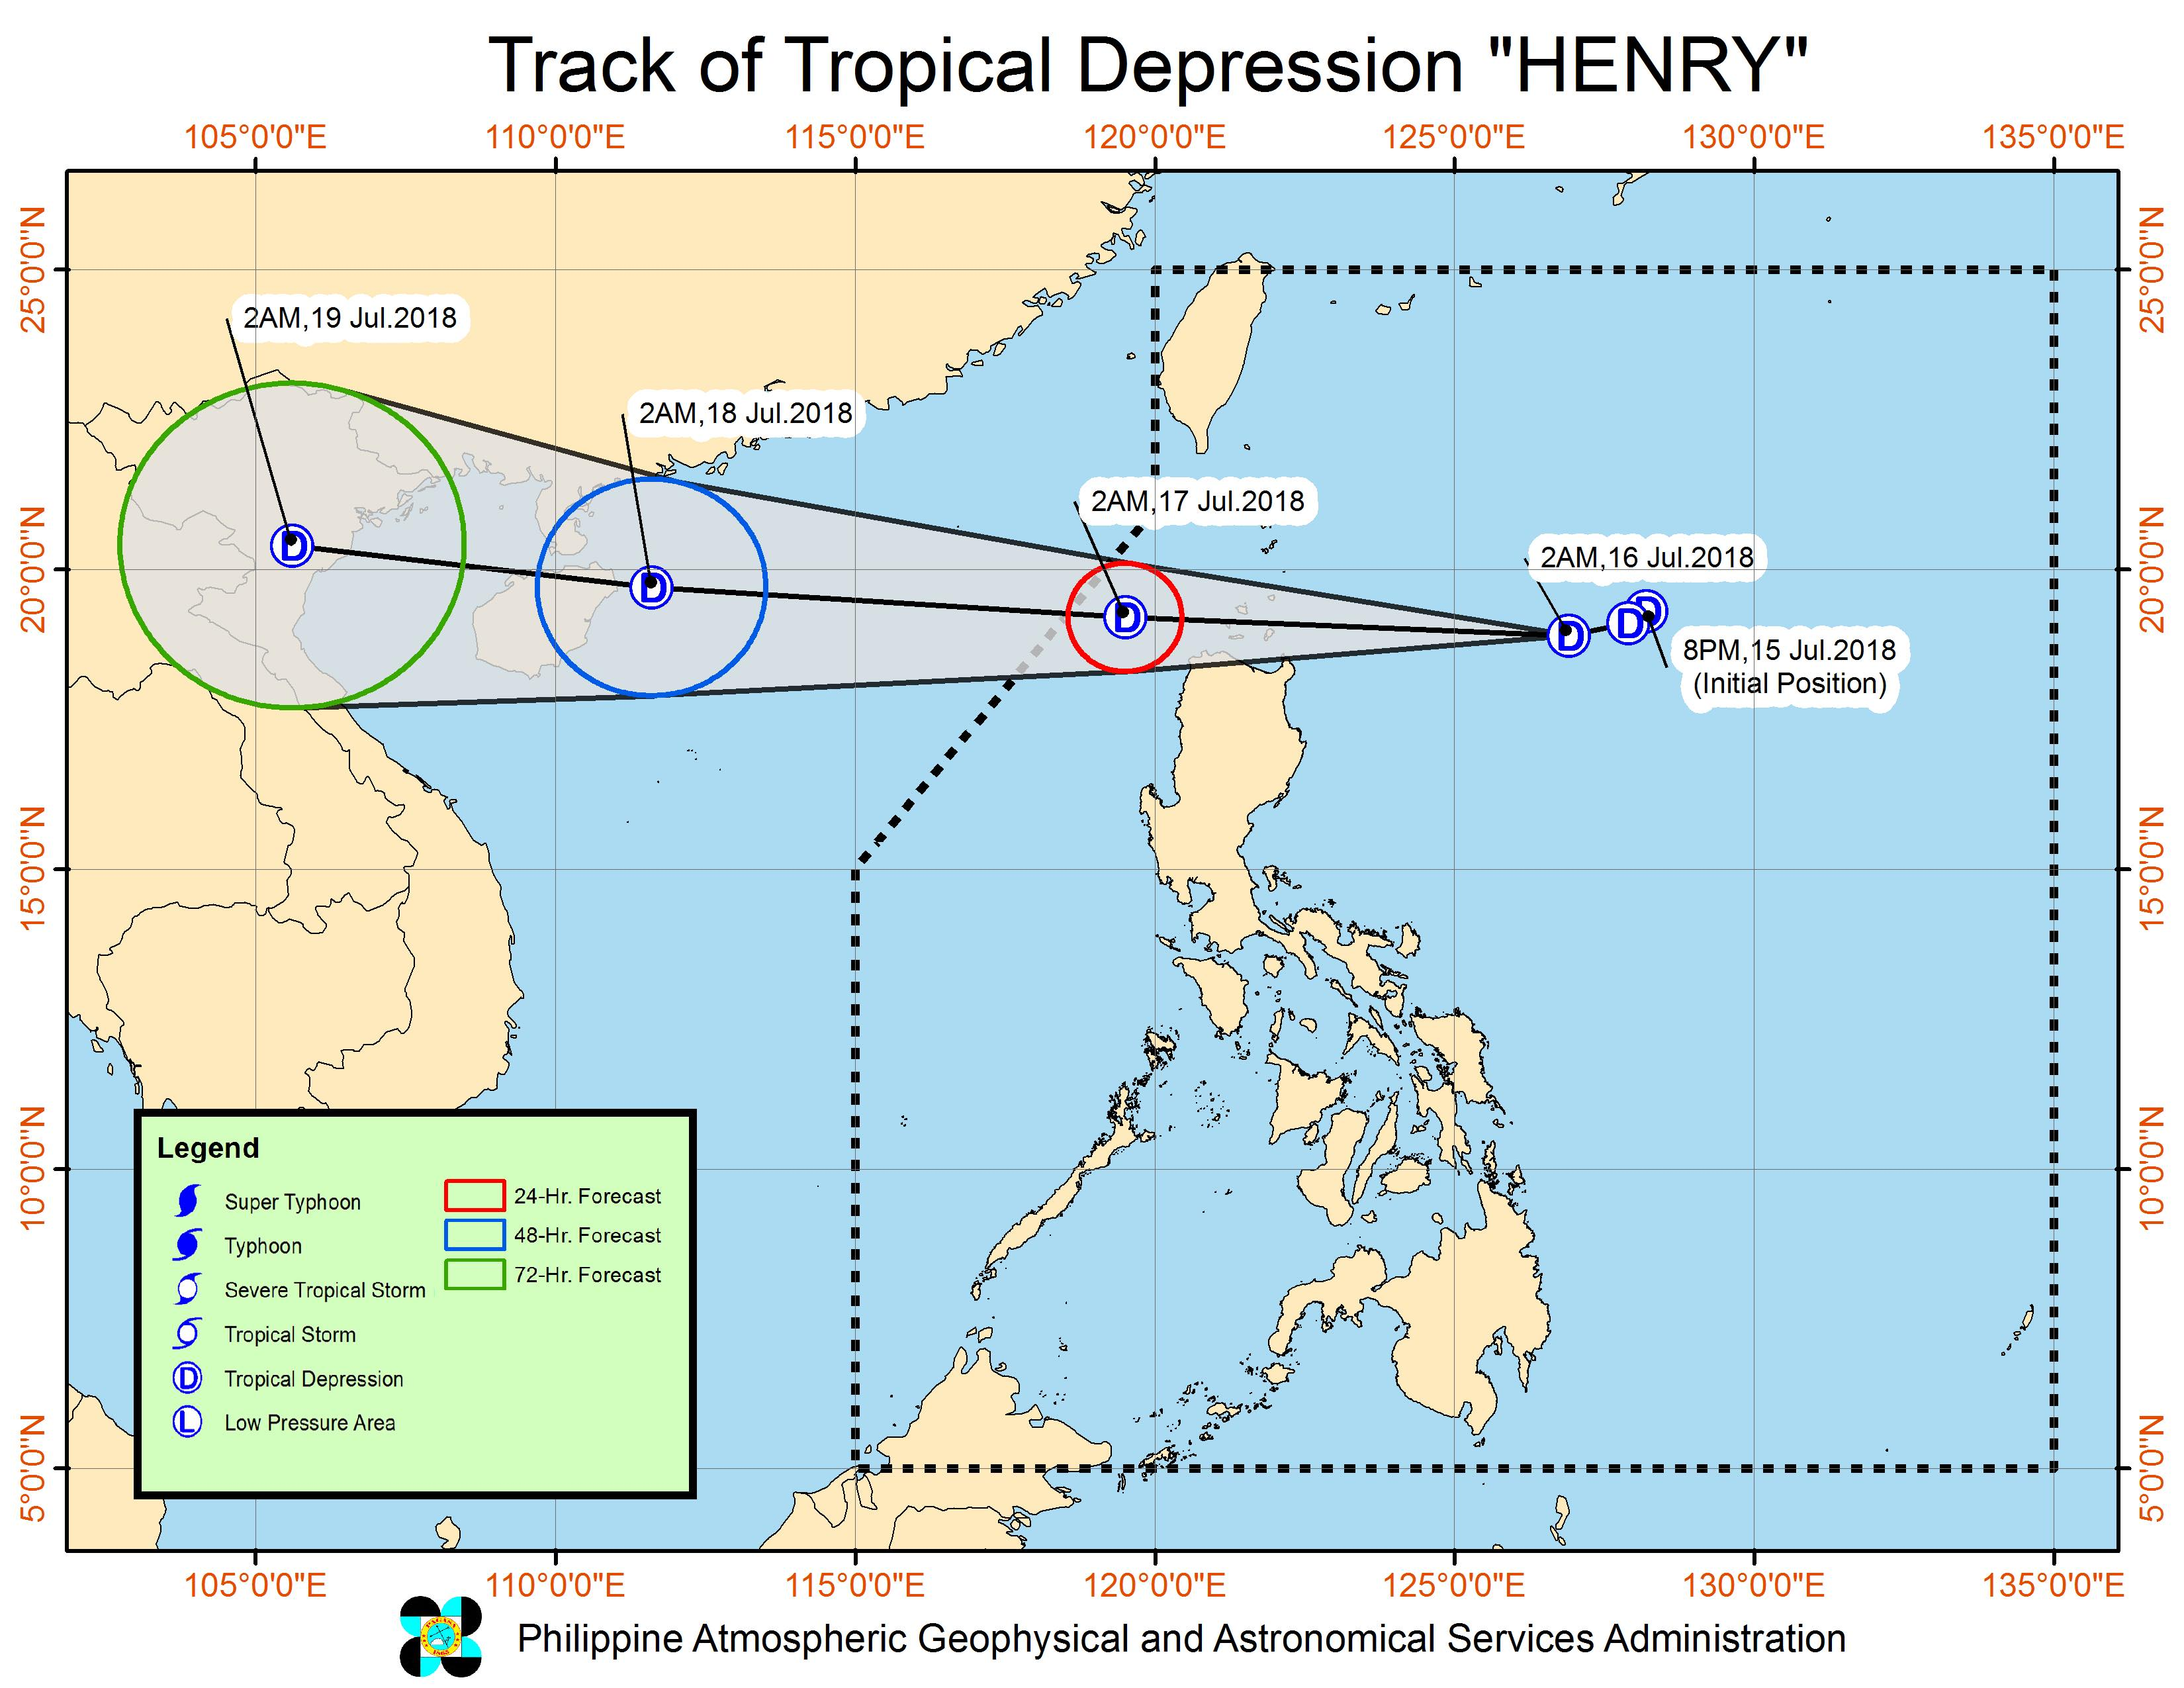 Tropical Depression Henry off to extreme Northern Luzon